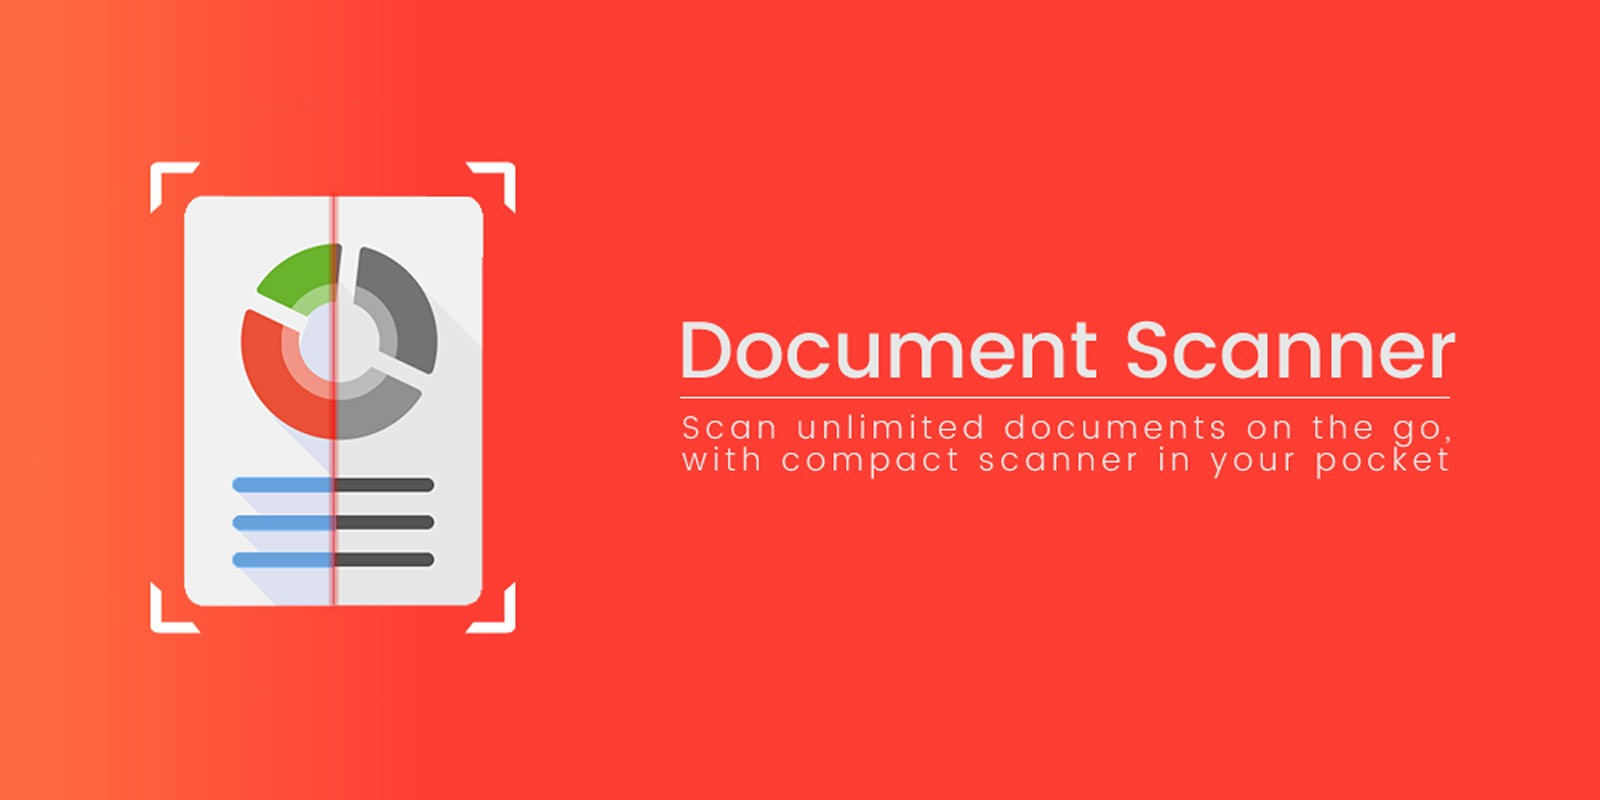 Document Scanner - Android Source Code